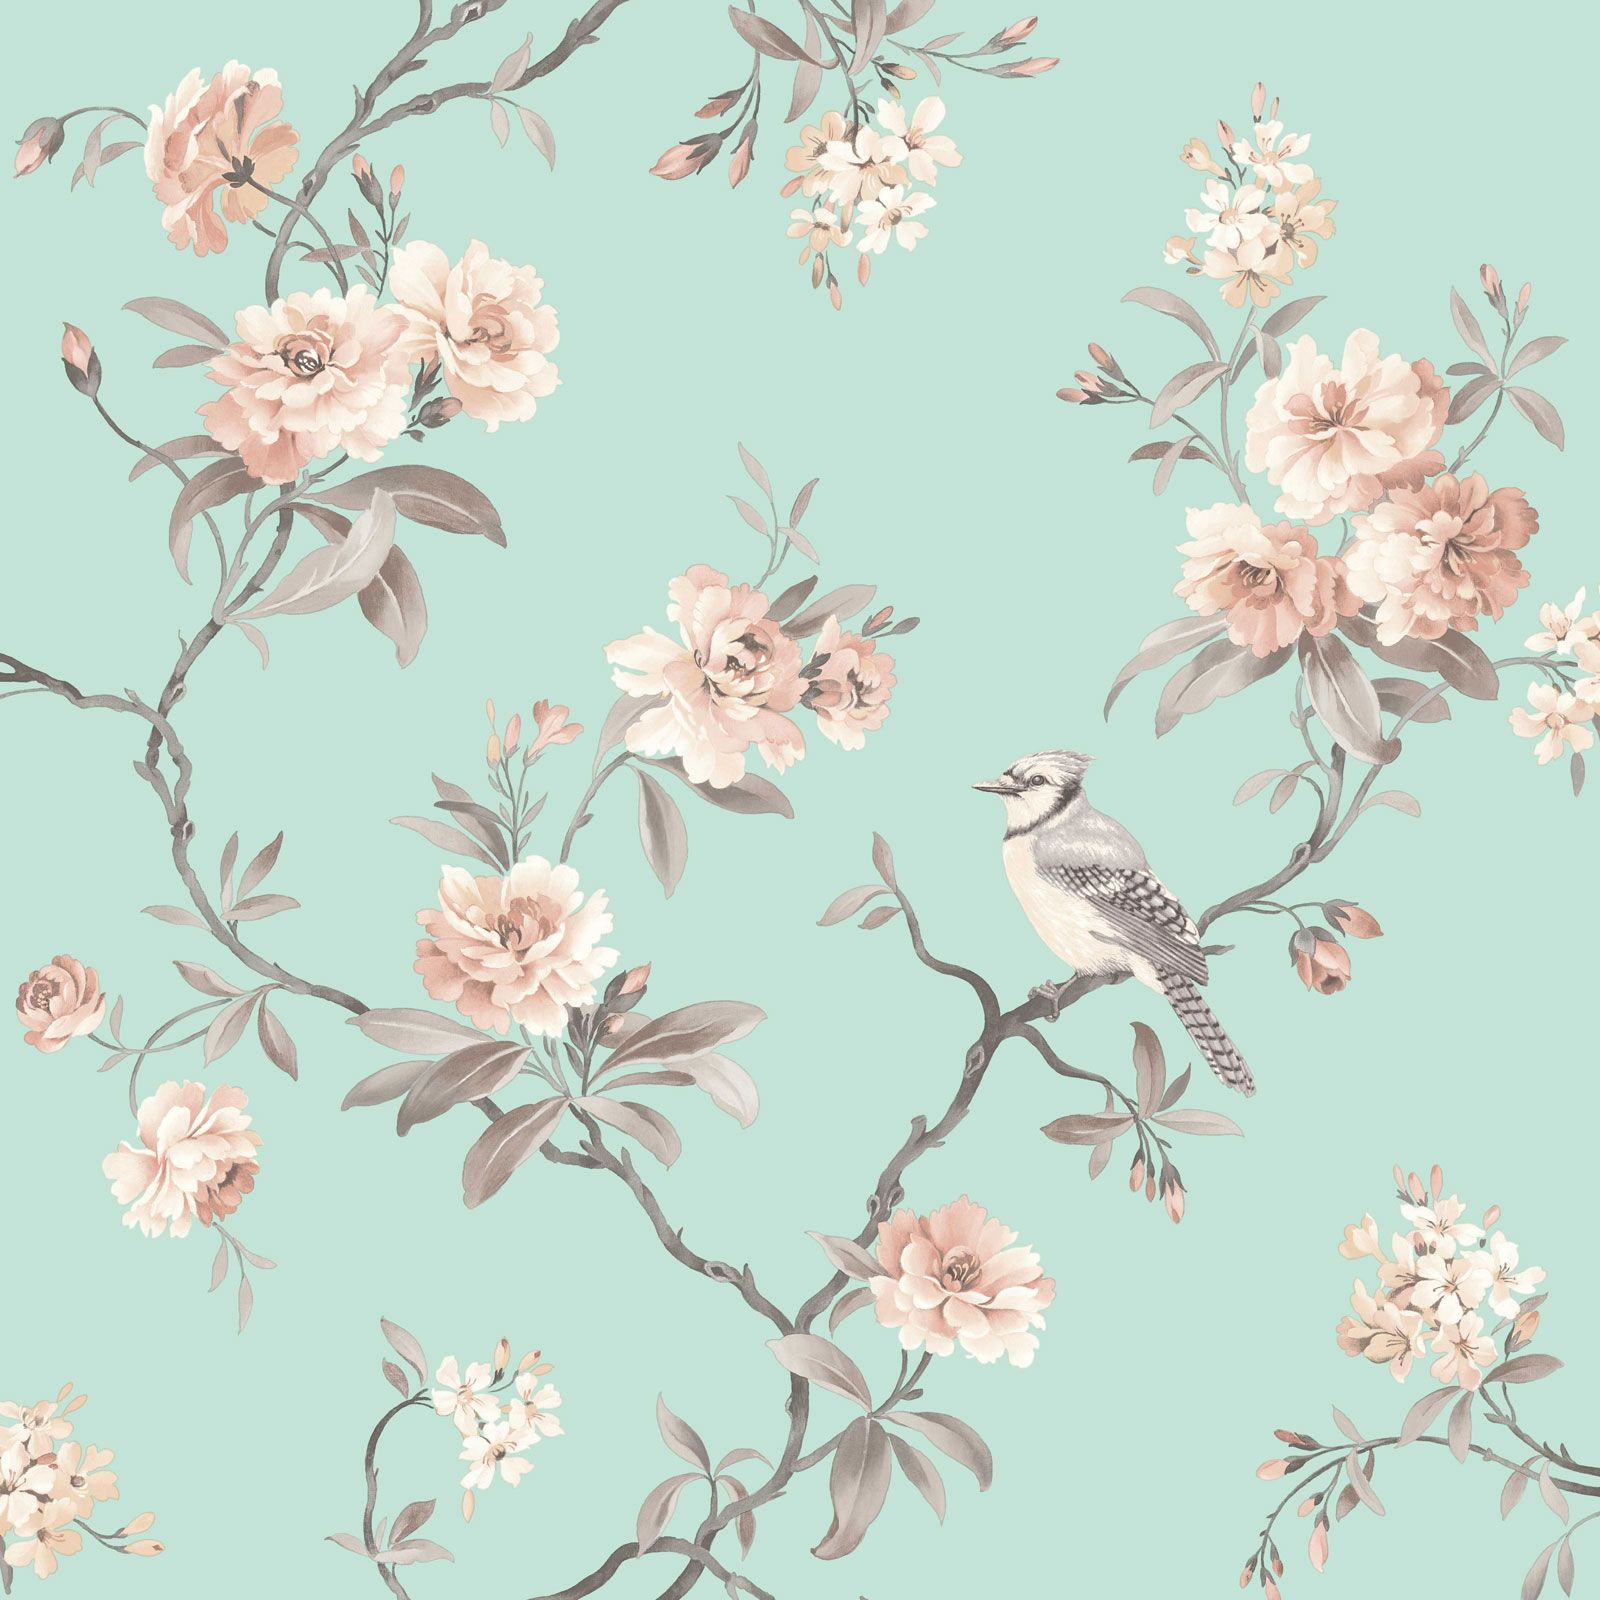 Wallpaper Designs With Birds : Fine d?cor teal duck egg wallpaper shabby chic owl